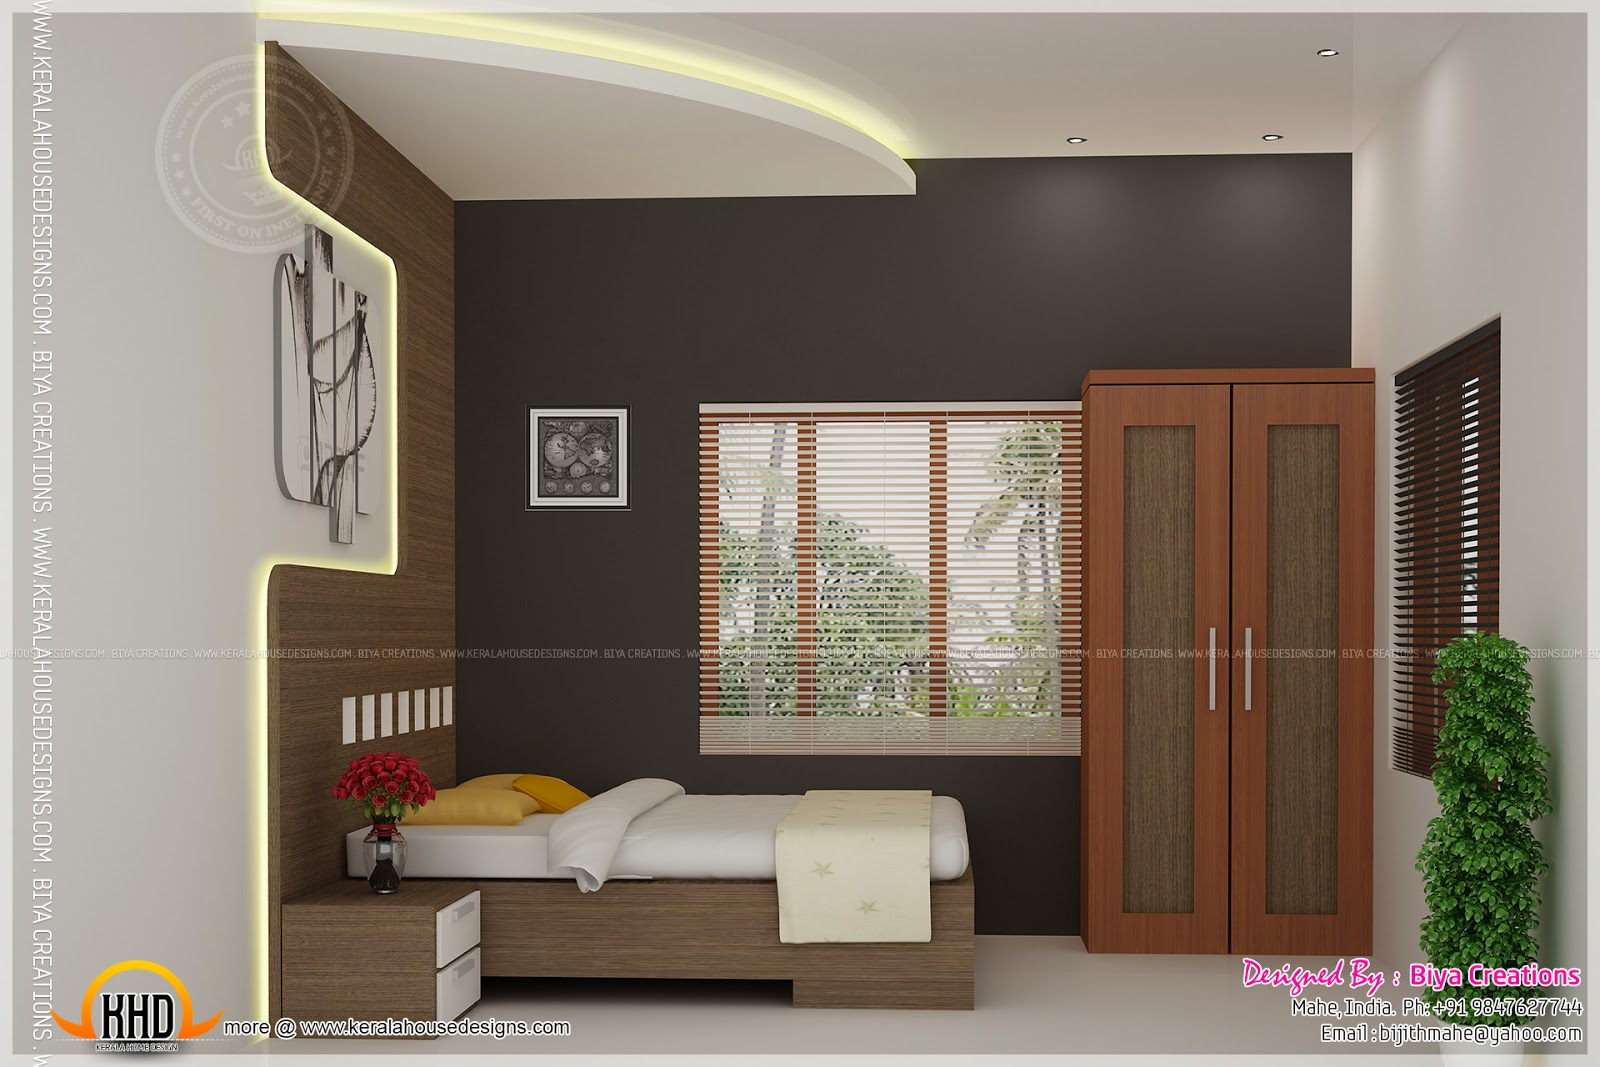 Bedroom kid bedroom and kitchen interior kerala home for Simple interior design ideas for indian homes